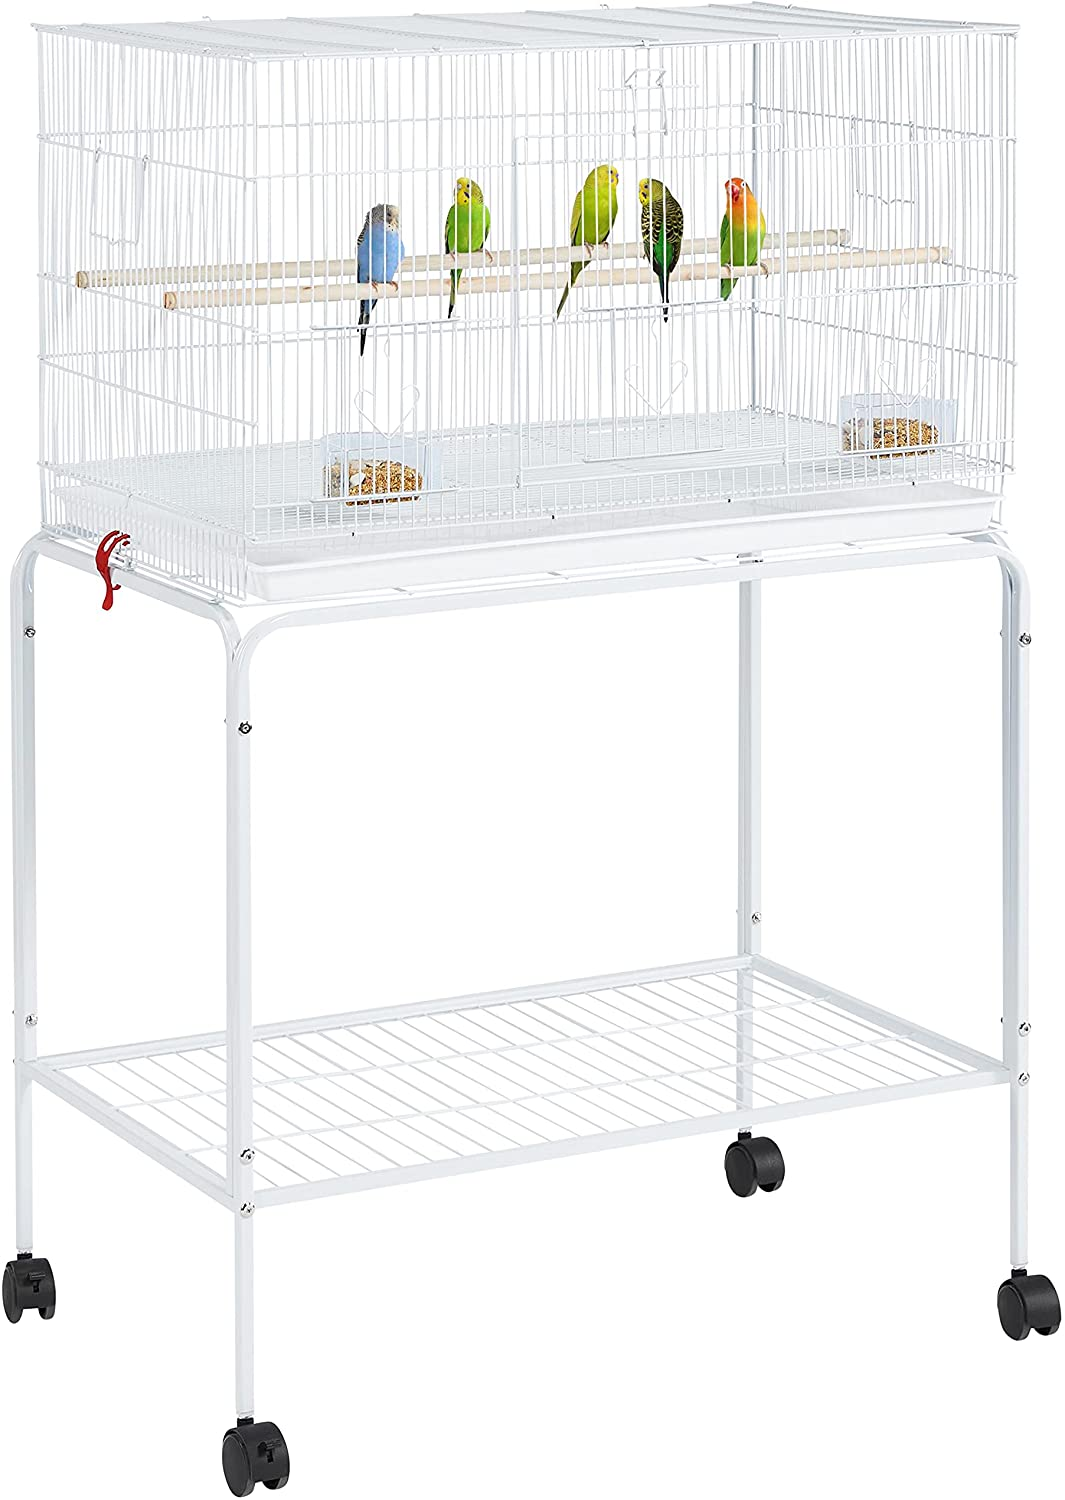 Yaheetech 47-inch Flight Bird Cages for Parakeets Cockatiels Conures Budgies Finches Lovebirds Canaries Parrots Breeding Birdcage with Detachable Rolling Stand, White : Kitchen & Dining